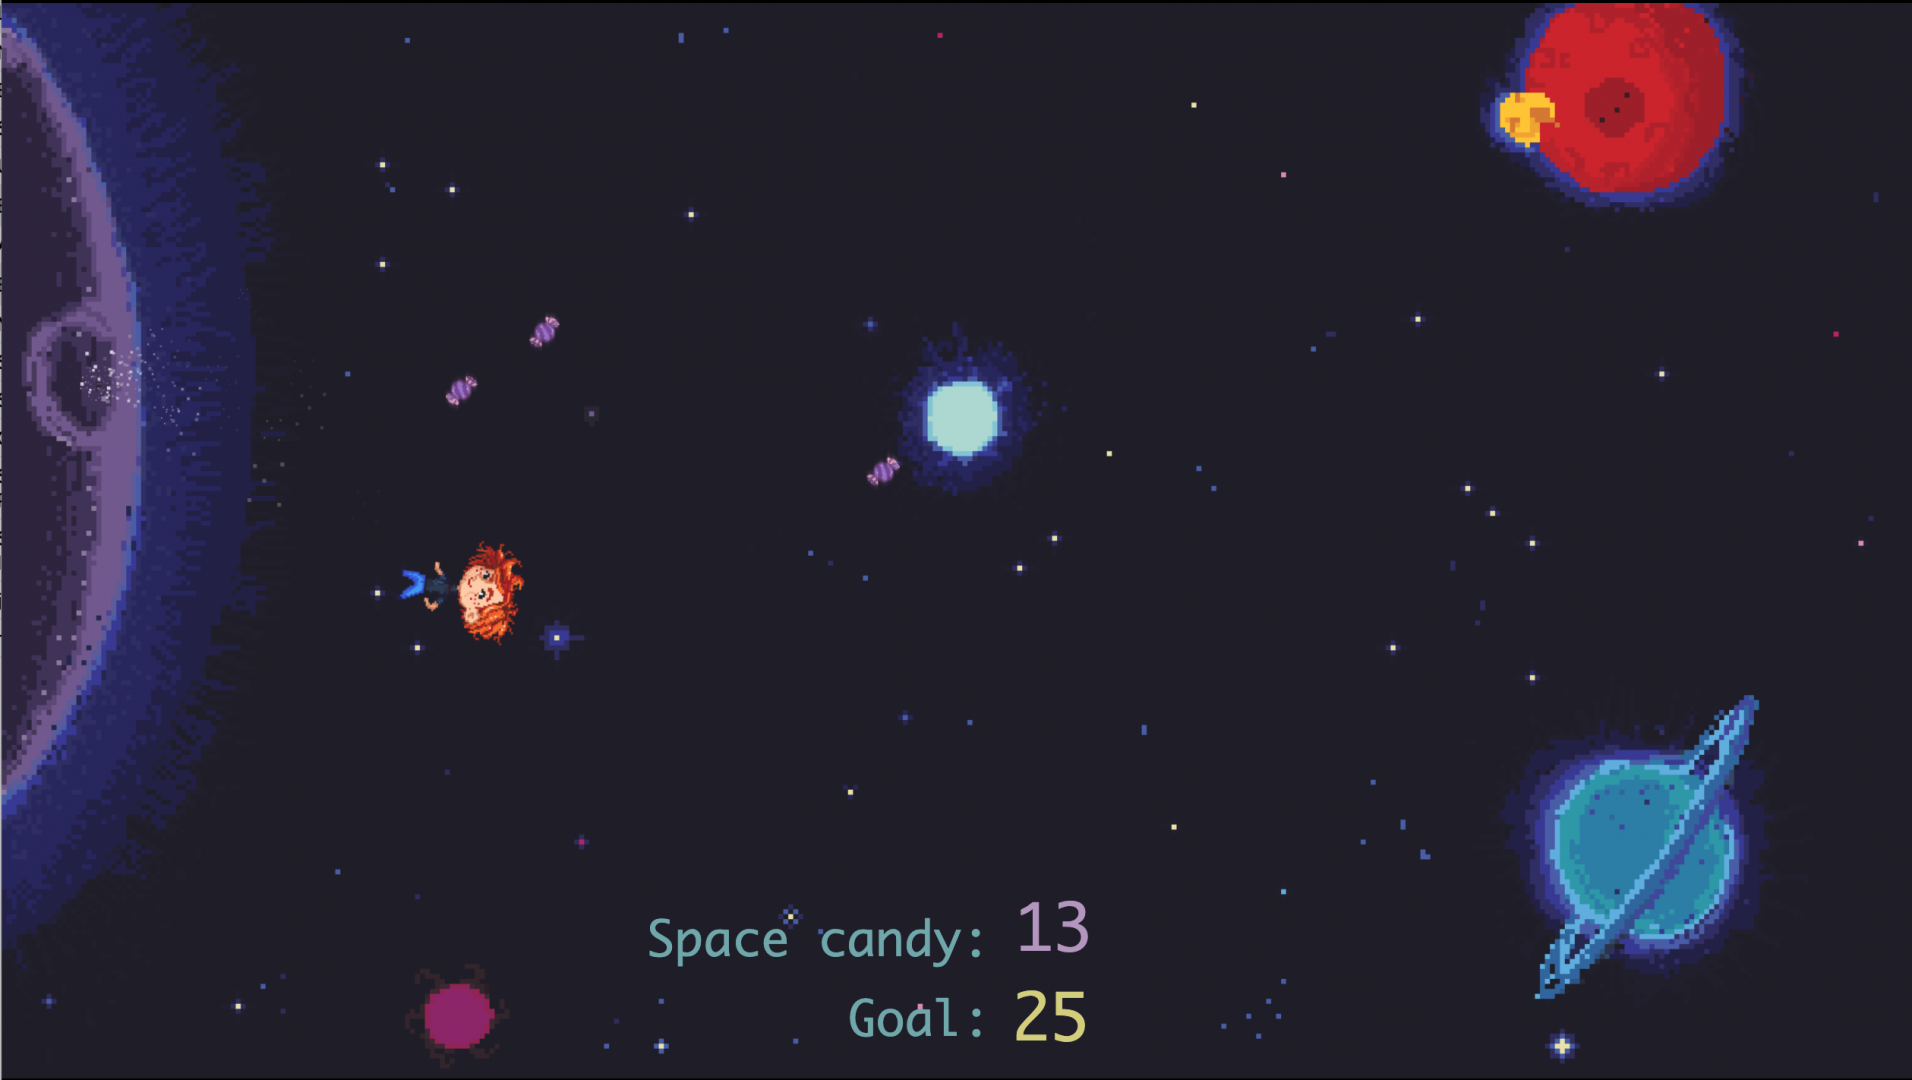 Screenshot 3 of Space Candy playable concept.